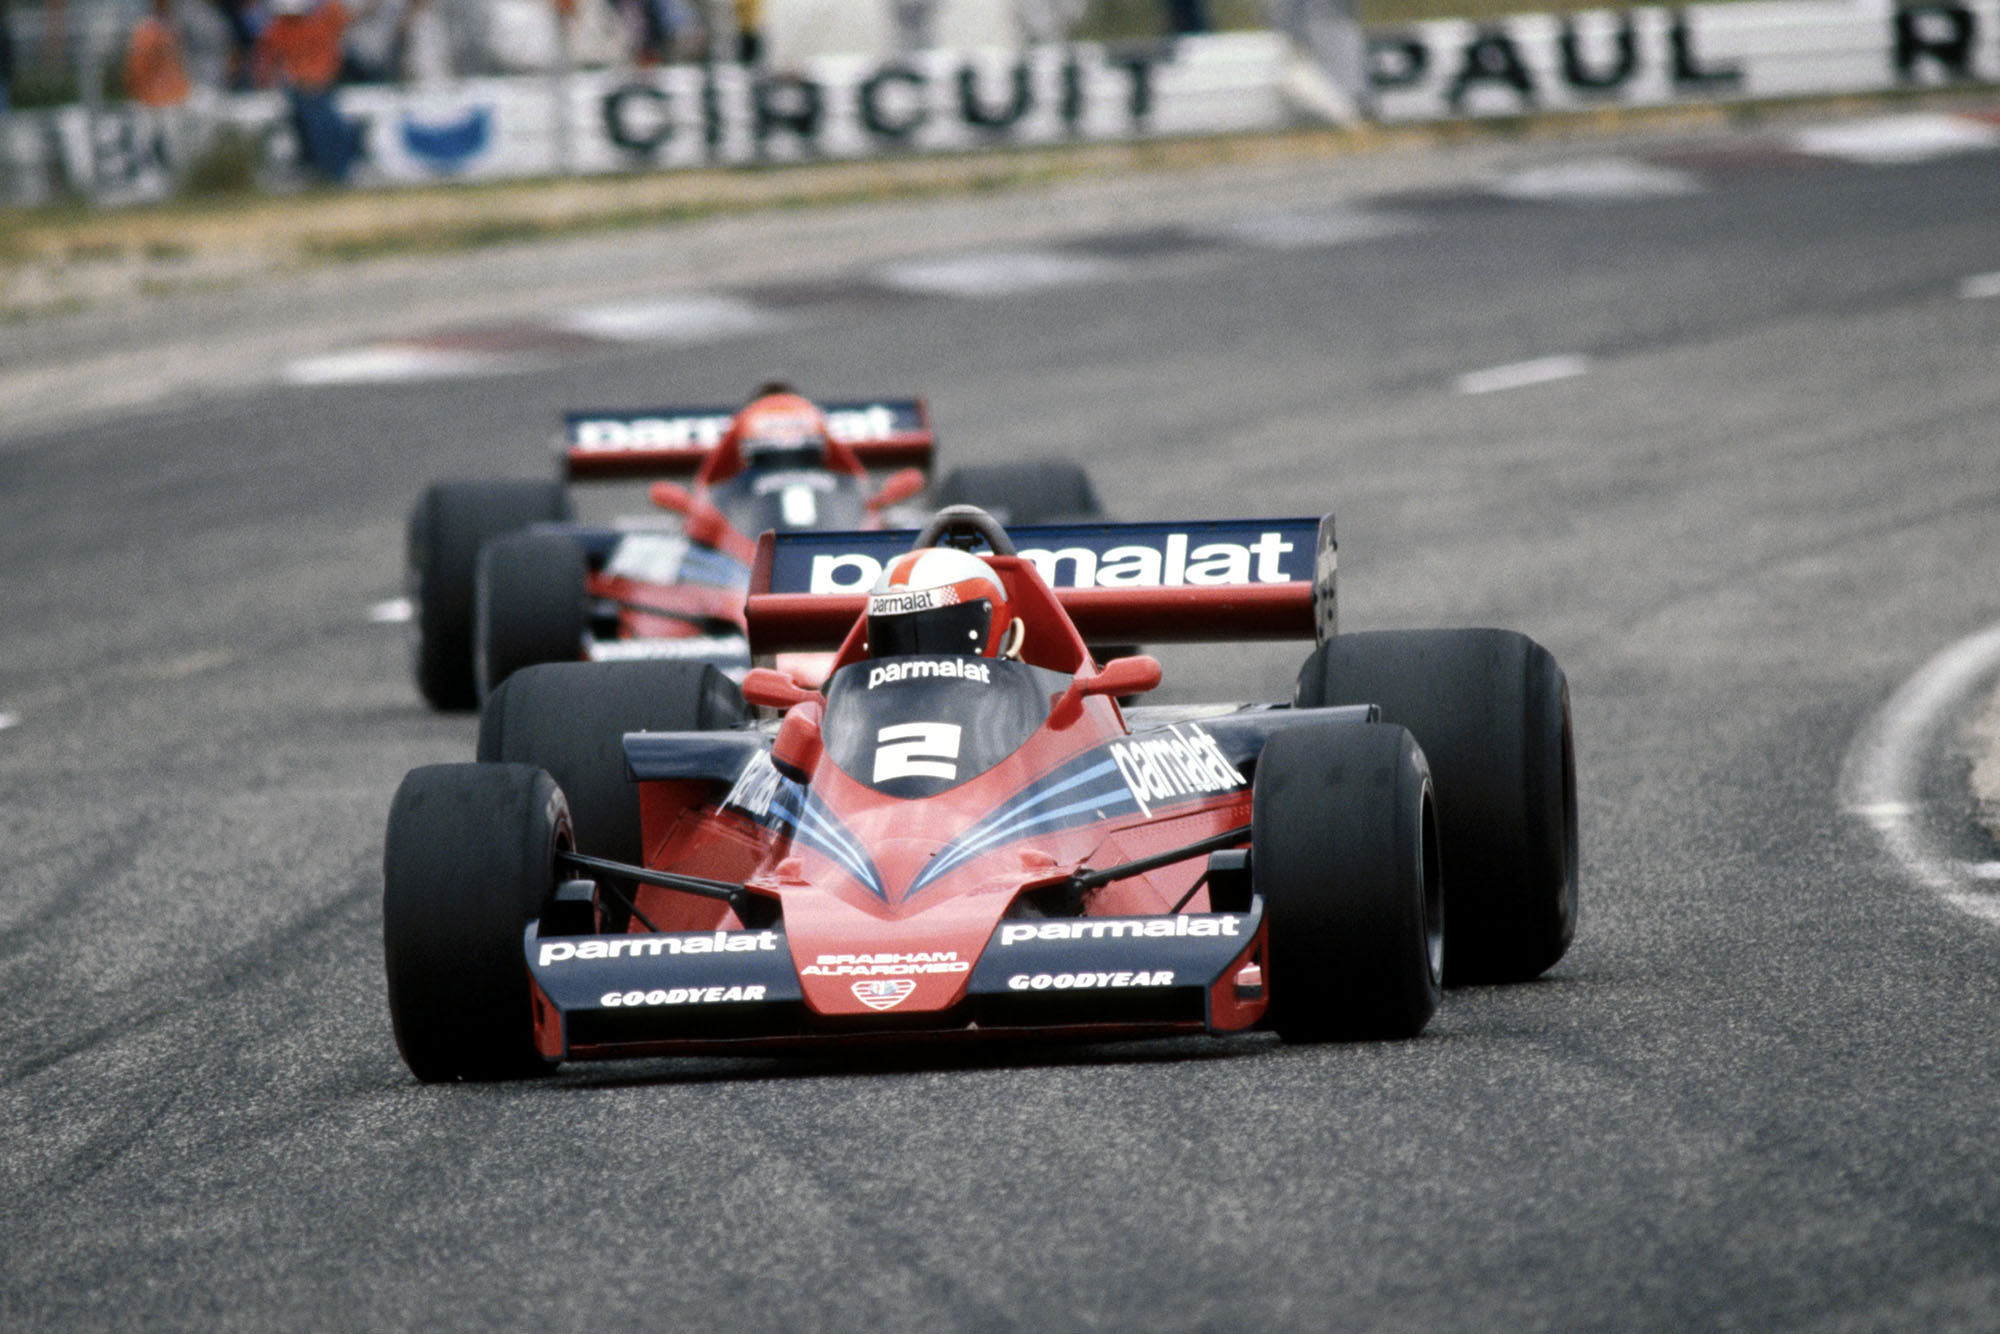 John Watson (Brabham) competing at the 1978 French Grand Prix, Paul Ricard.